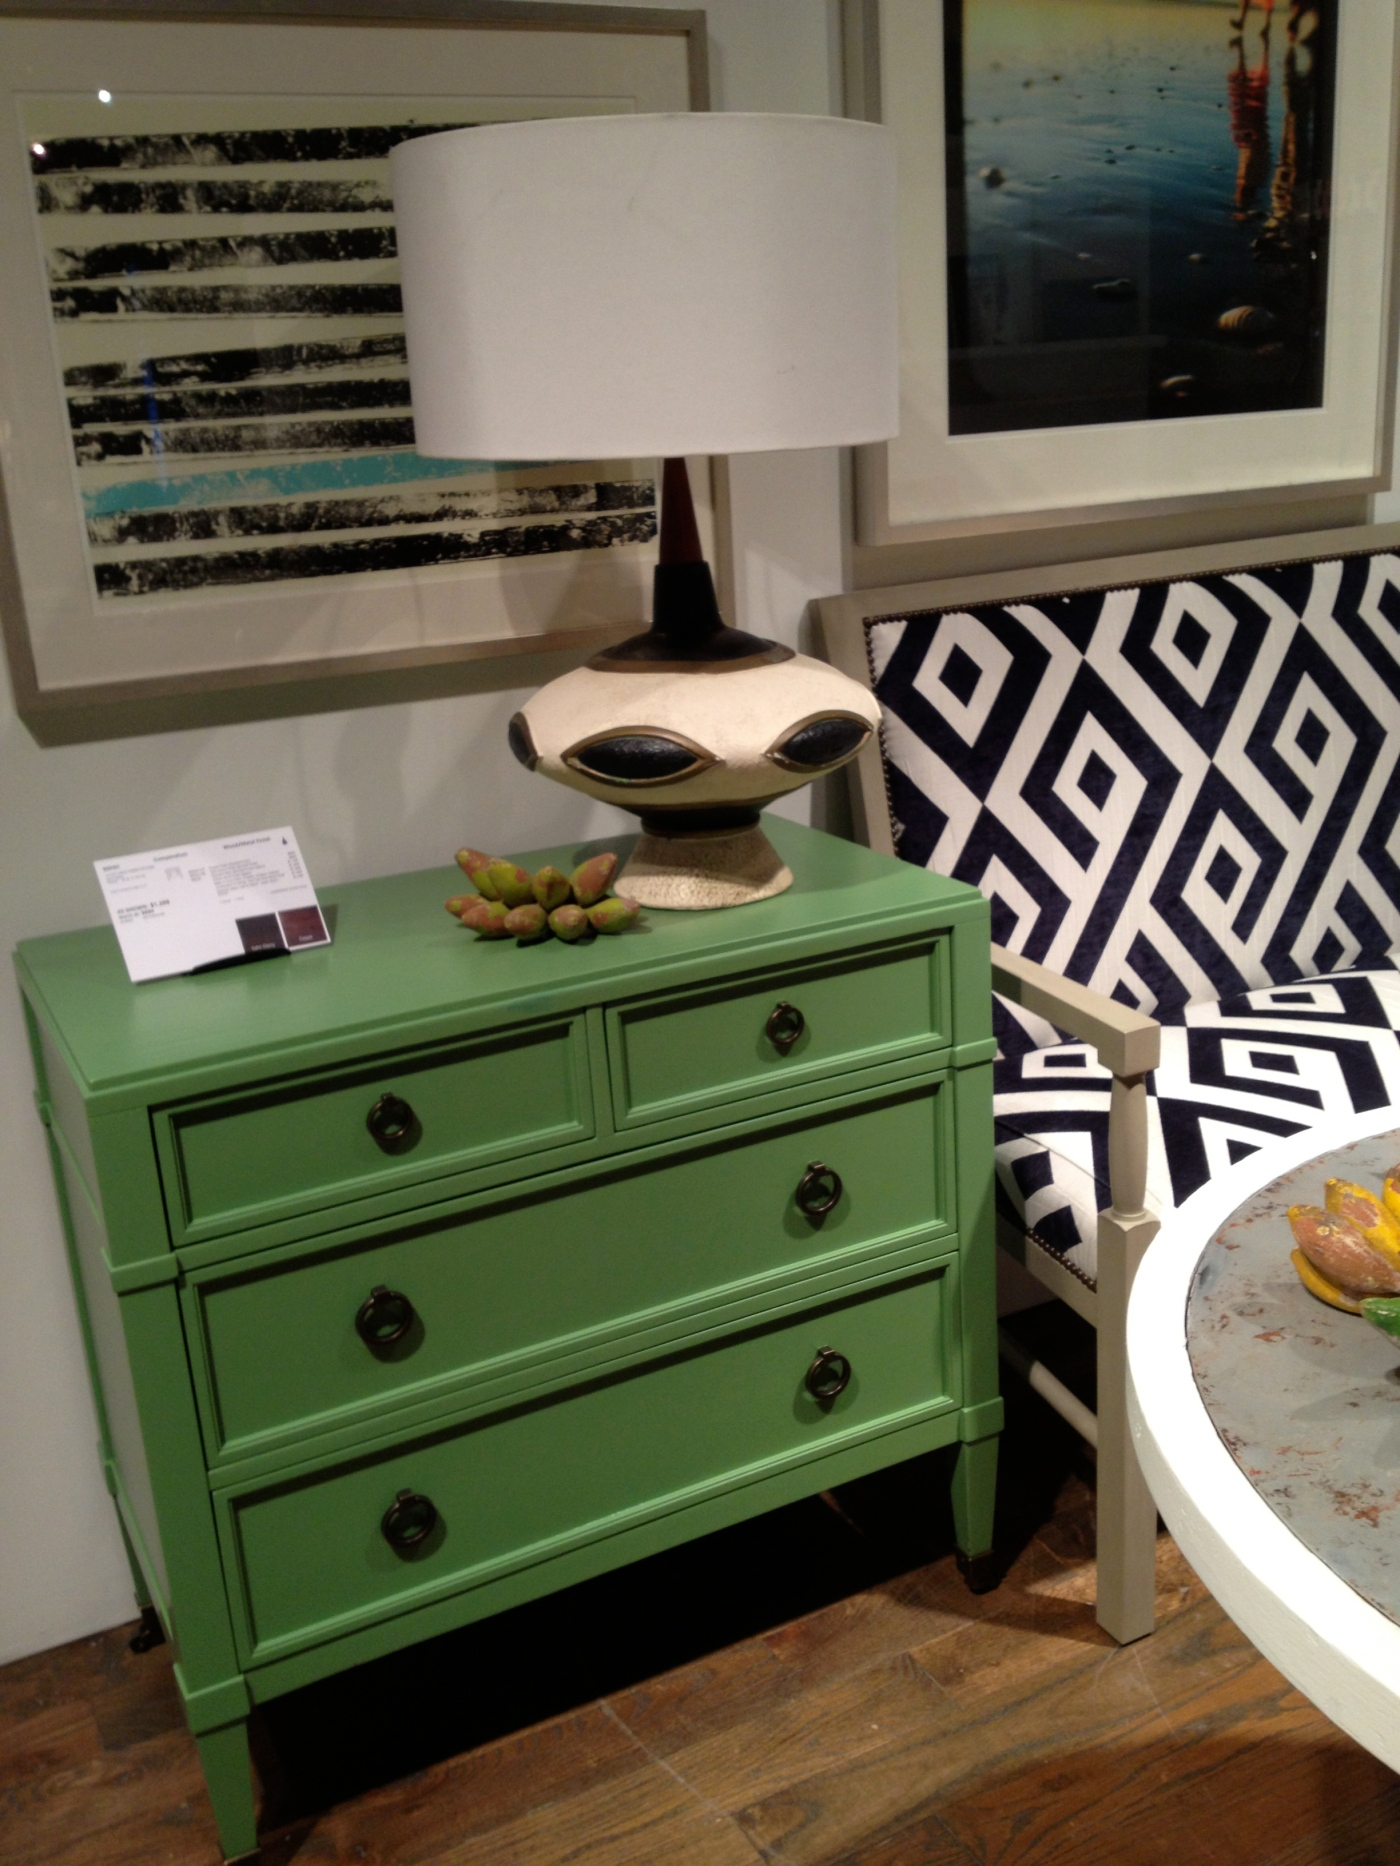 Green Chest at Vanguard Furniture Spring 2013 #hpmkt